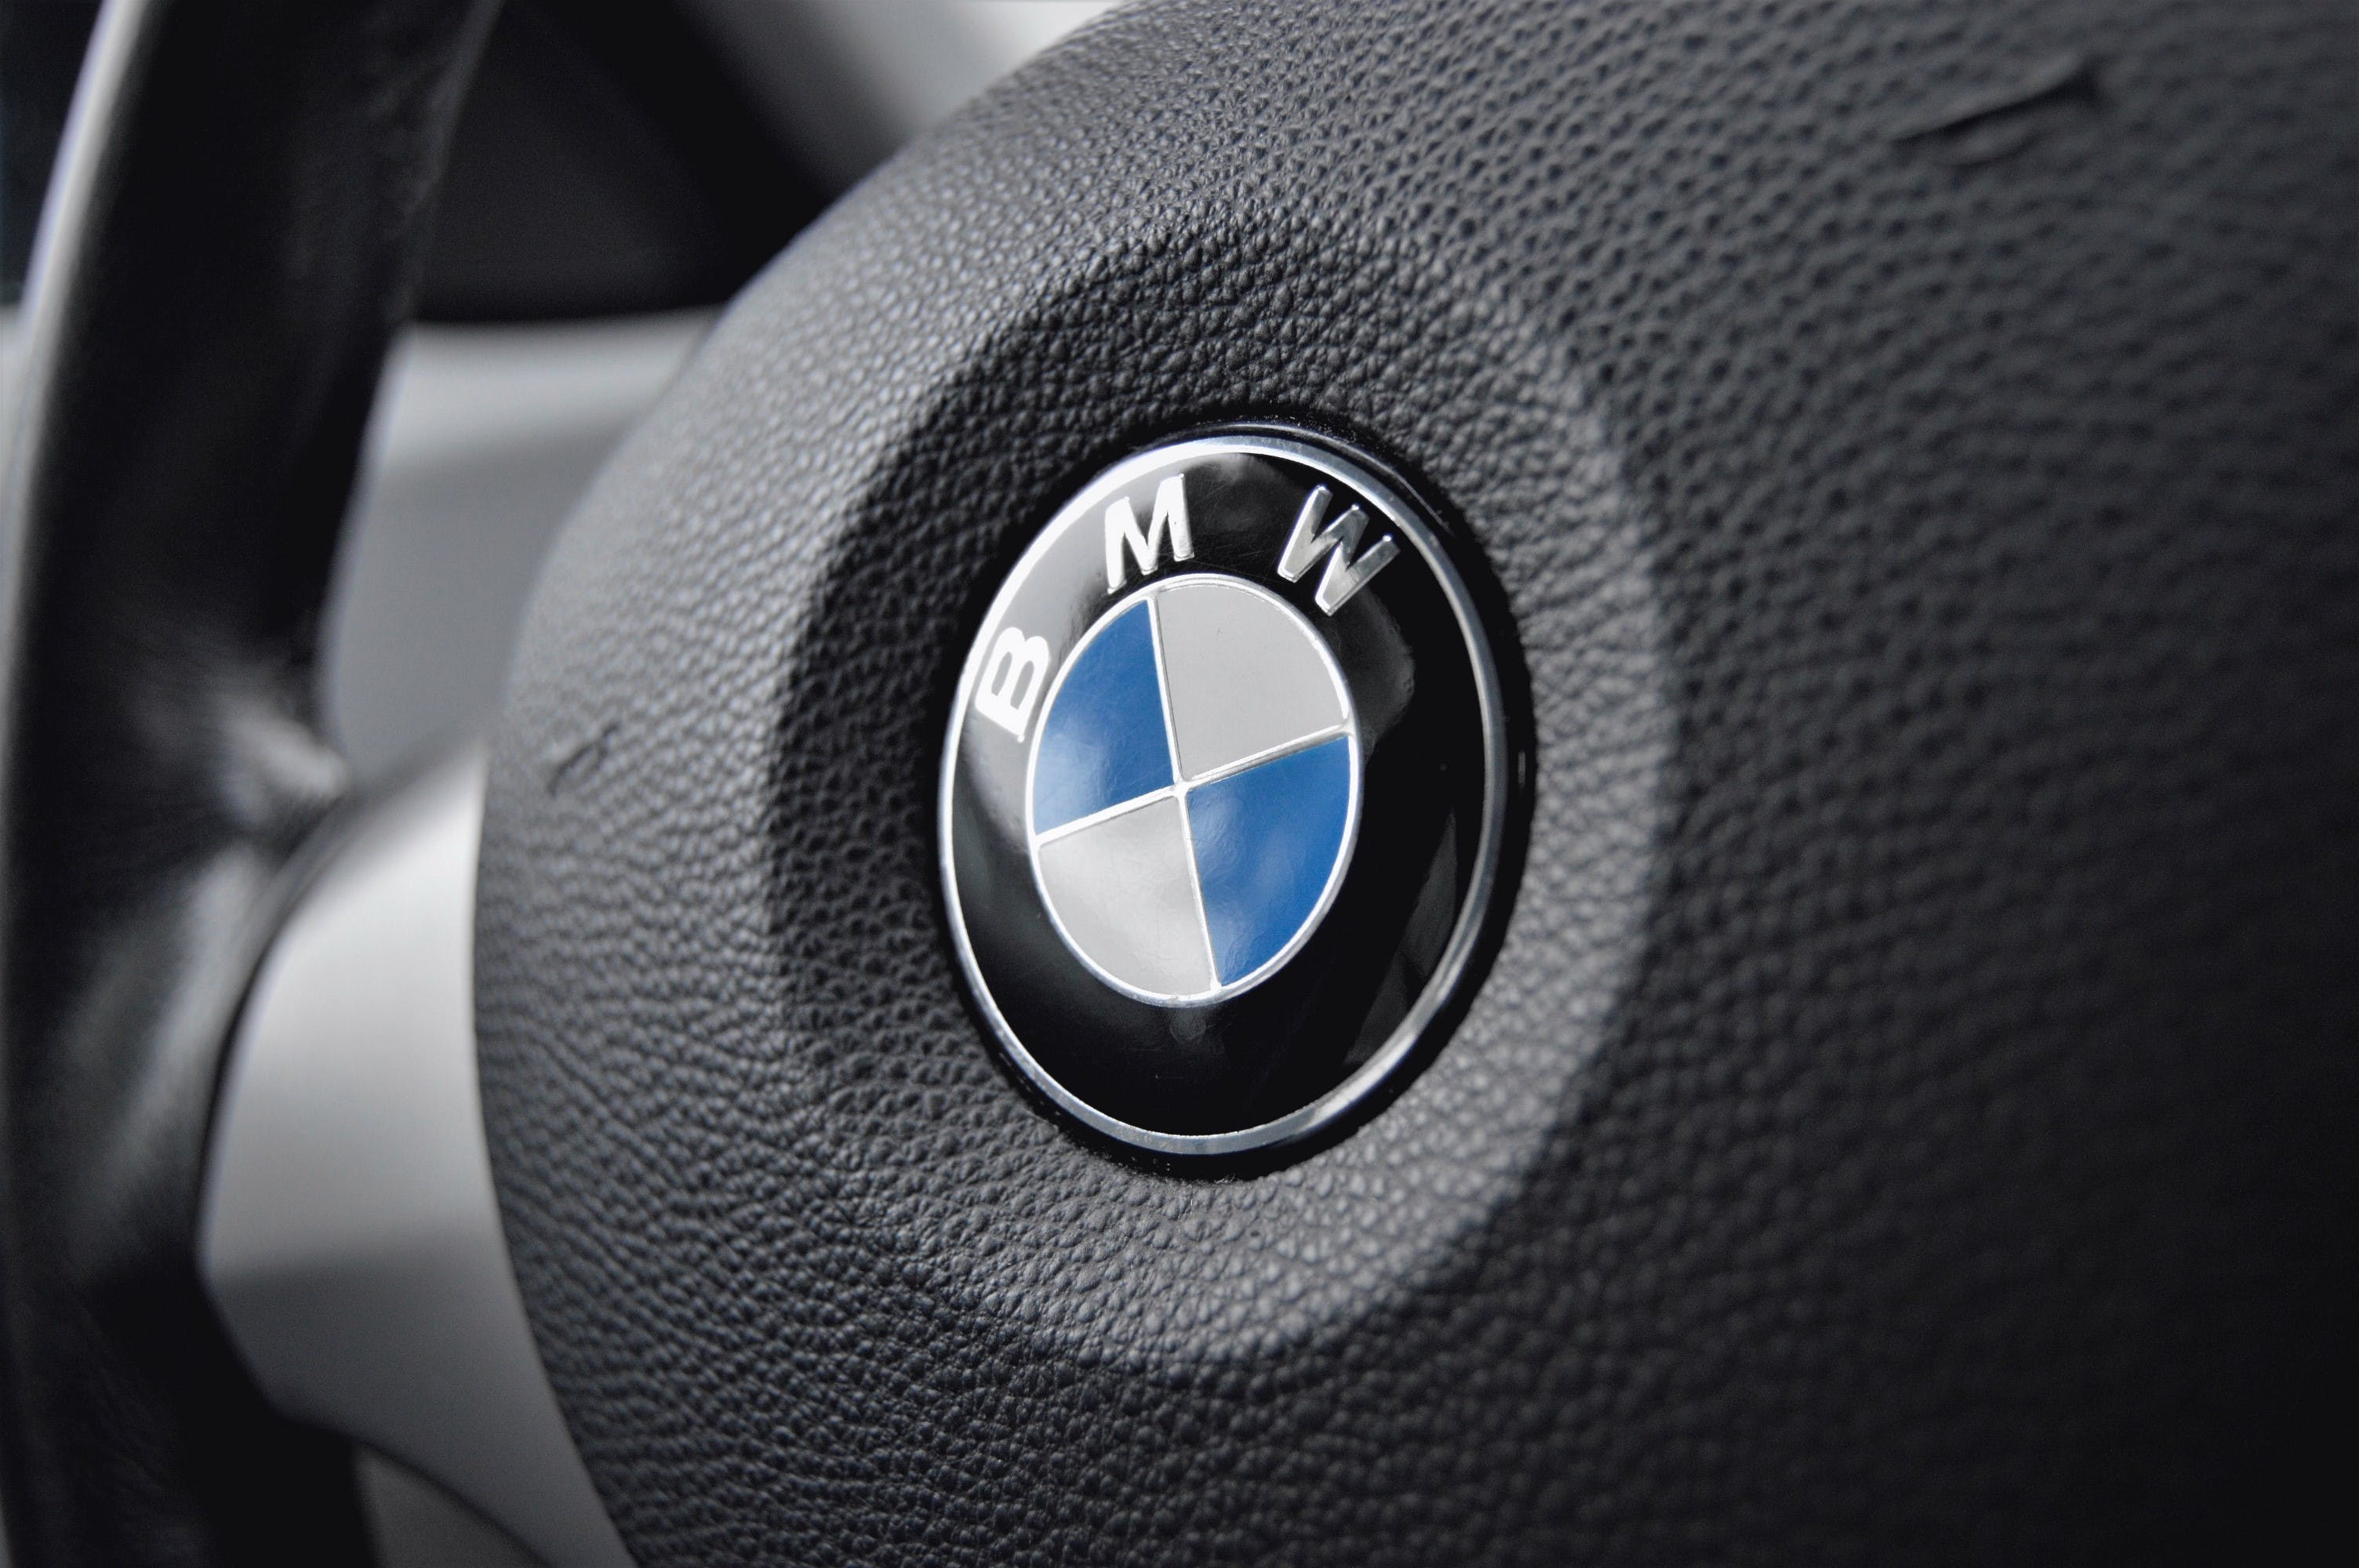 Black and Gray Bmw Steering Wheel